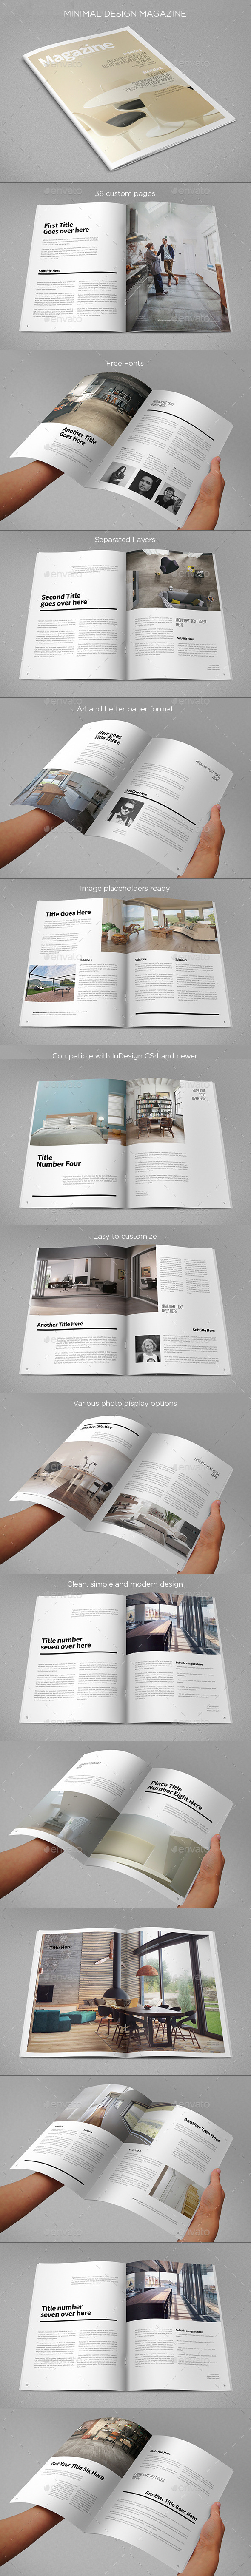 GraphicRiver Minimal Design Magazine 10049560